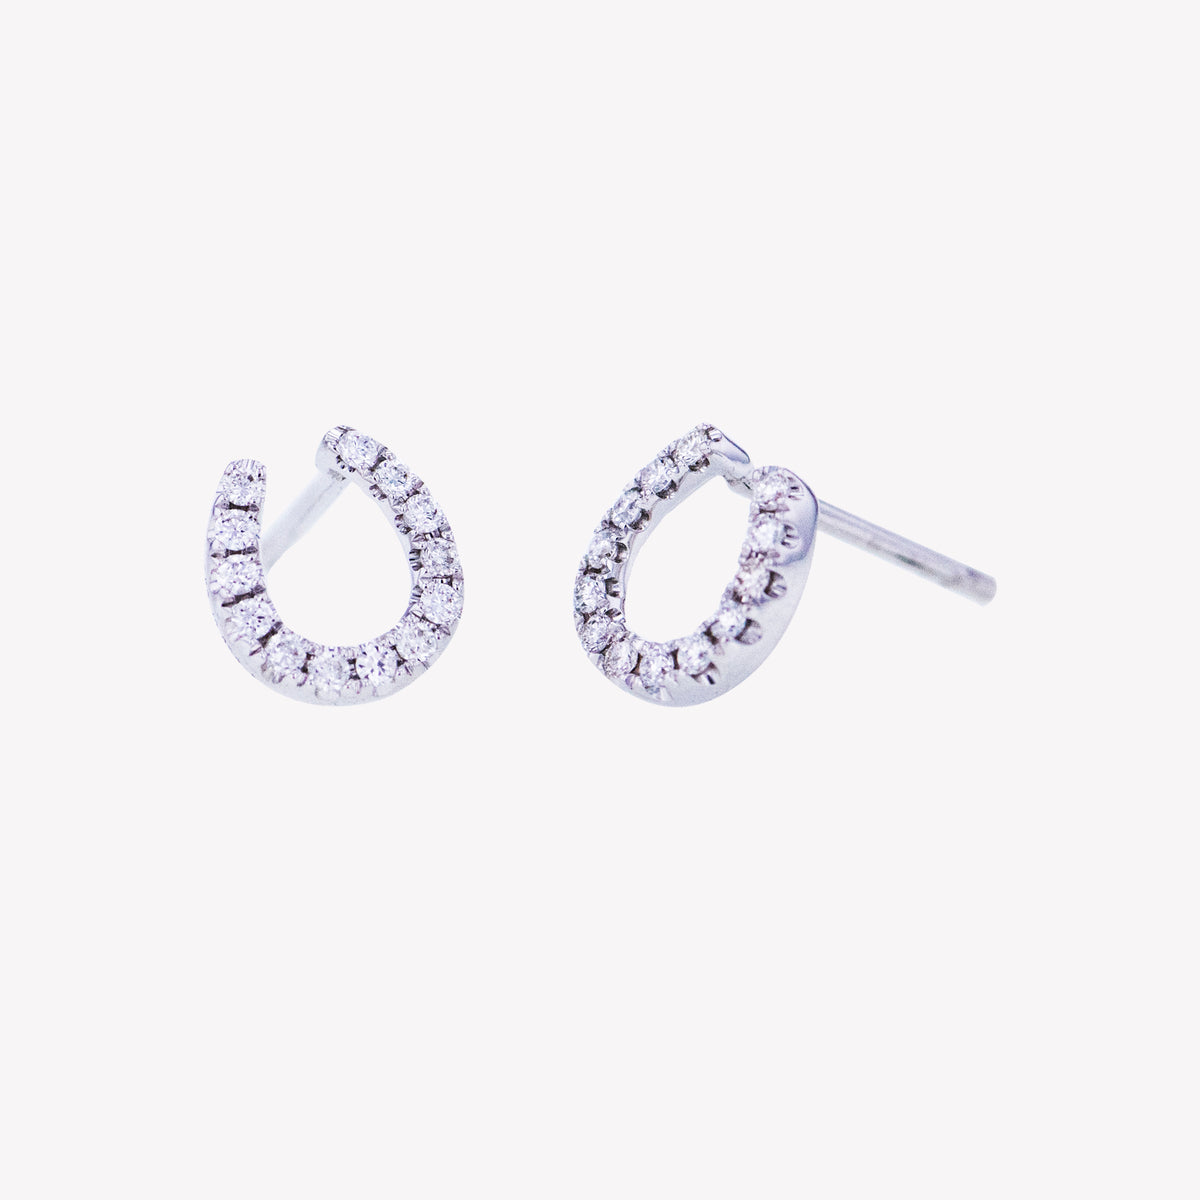 Horse Shoe Earrings in White Gold